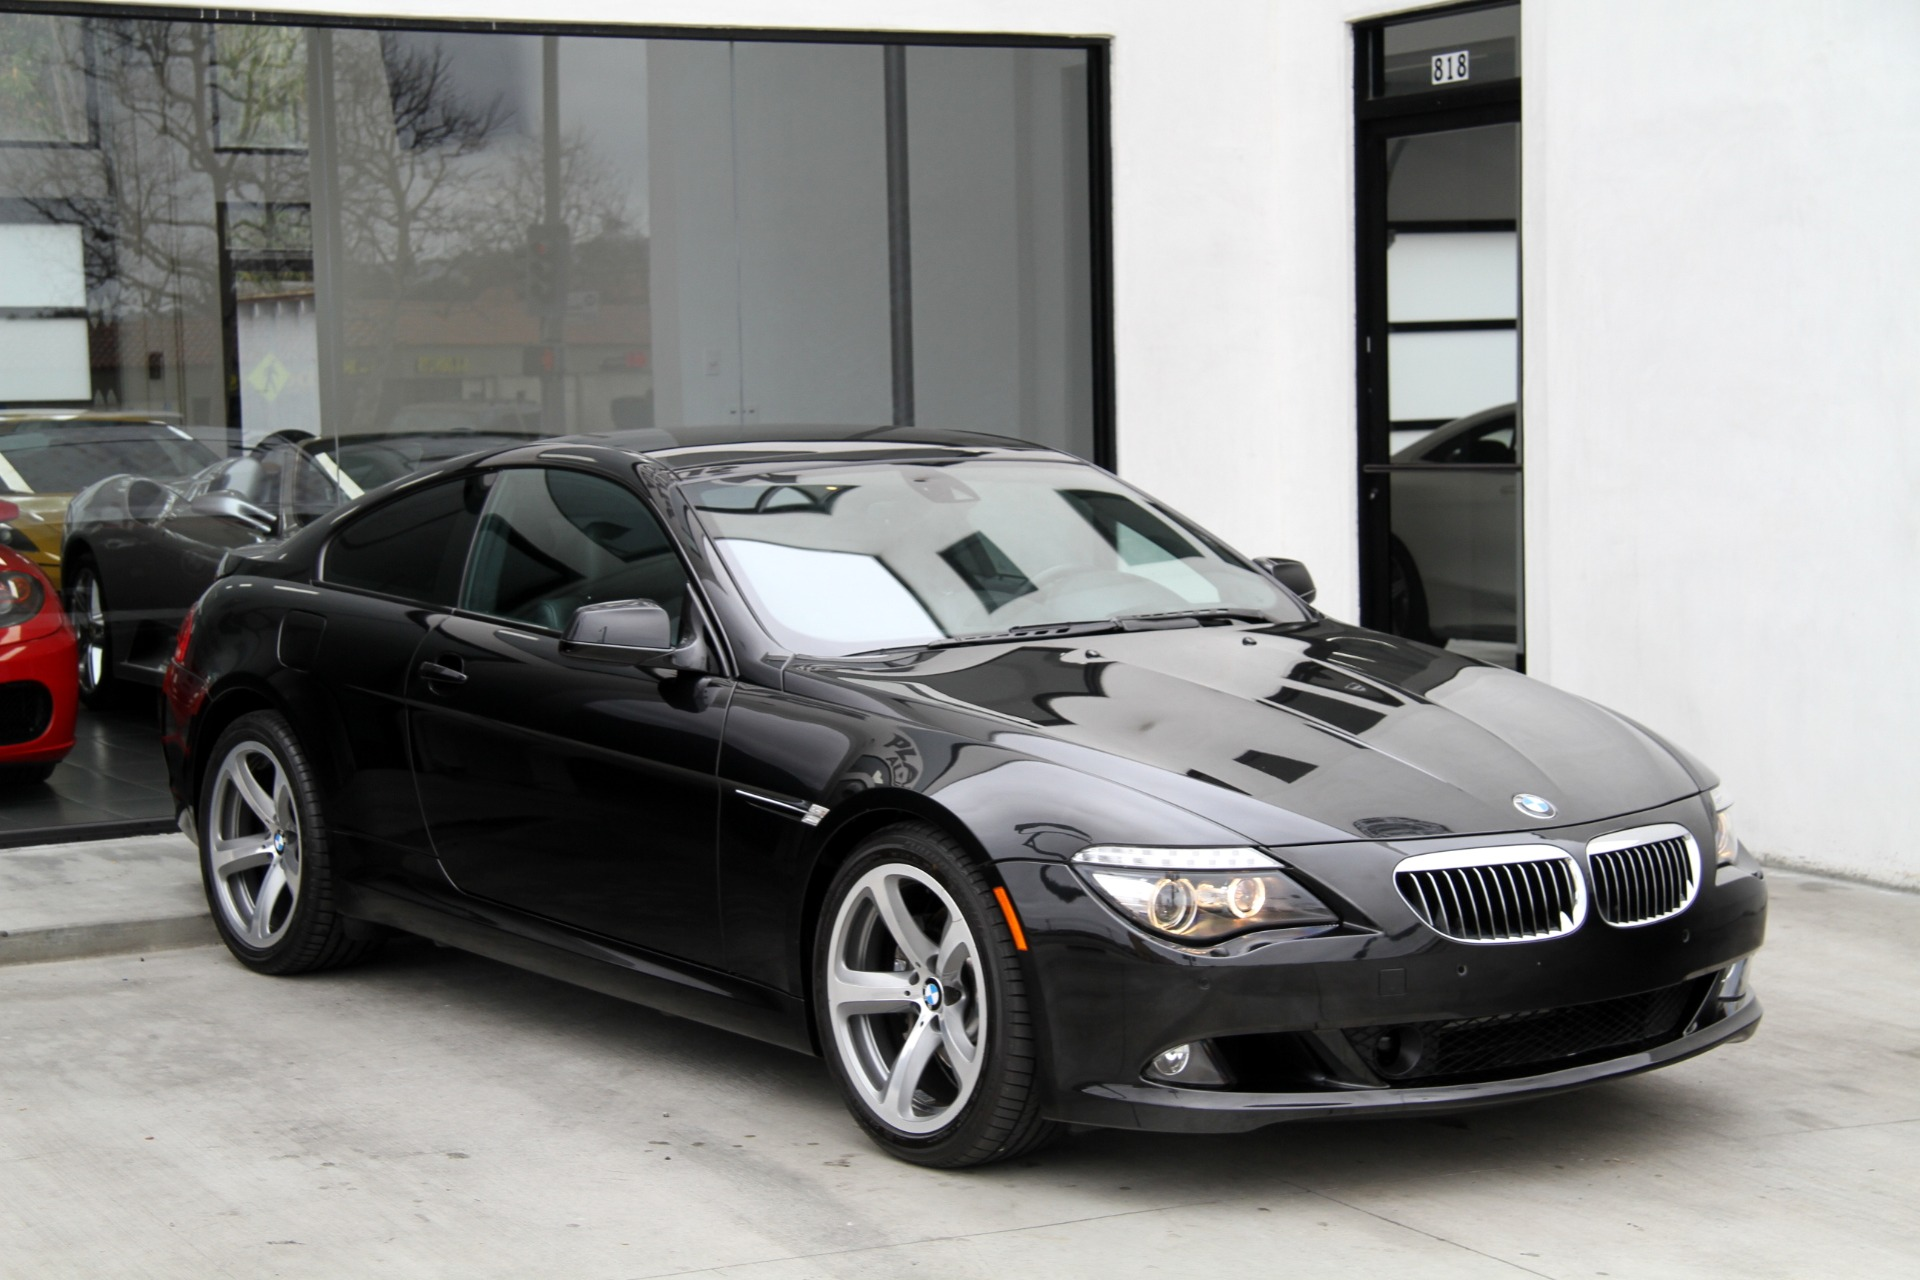 Free Vehicle History Report By Vin >> 2010 BMW 6 Series 650i Stock # 6077 for sale near Redondo ...